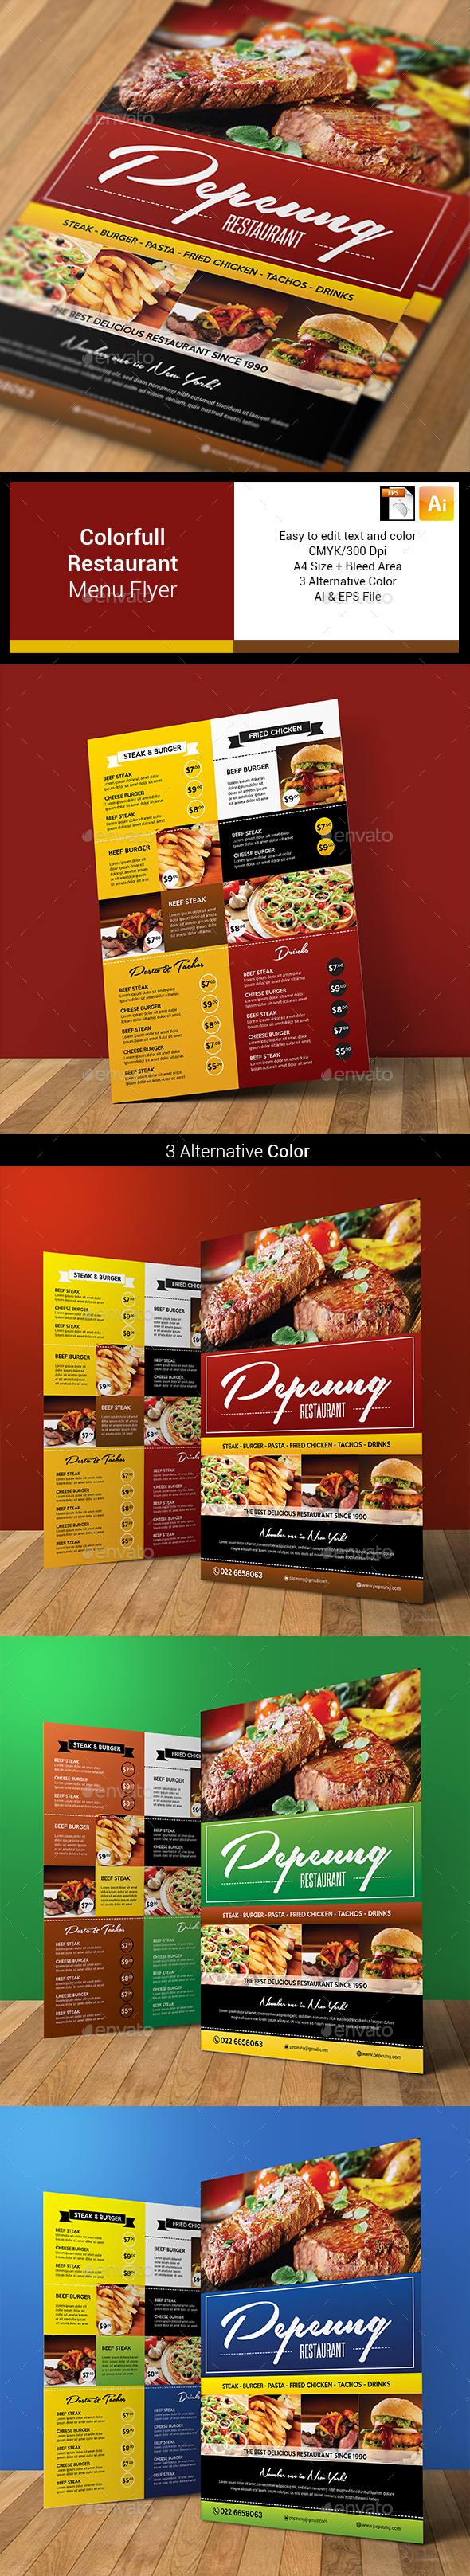 Colorfull Restaurant Menu Flyer